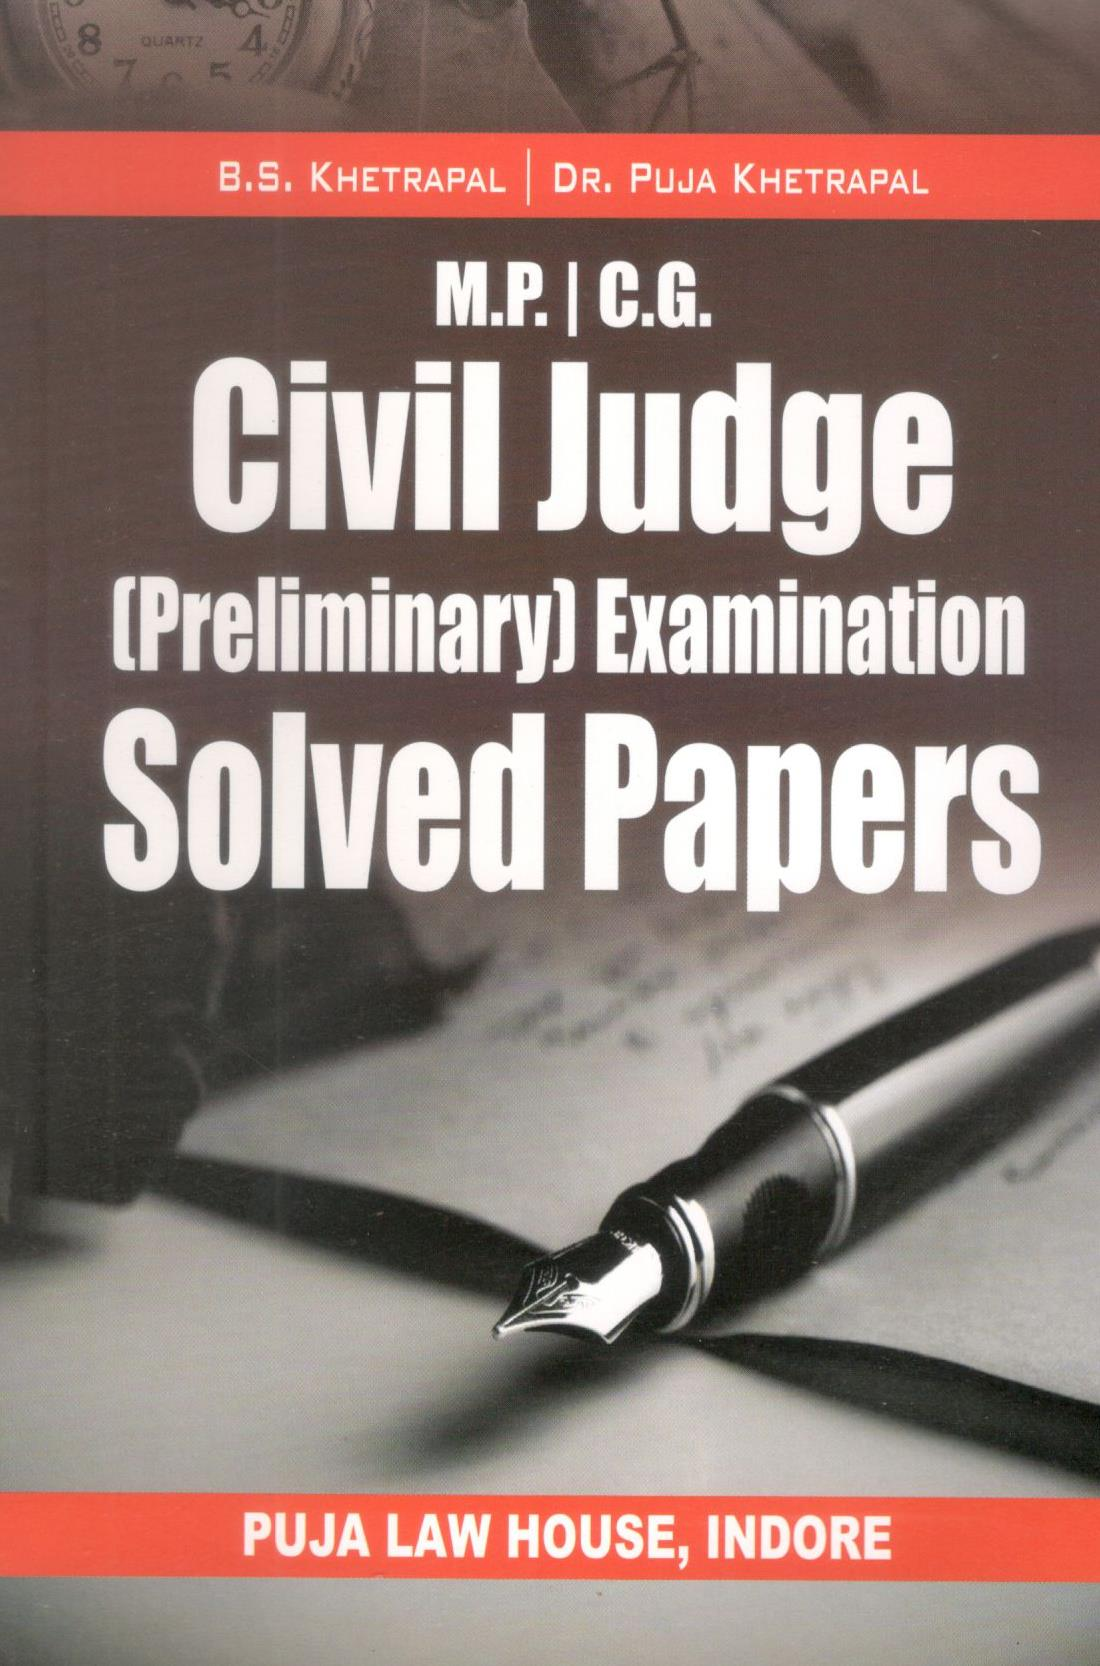 M.P.& C.G. Civil Judge (Preliminary) Examination Solved Papers 1996-2019